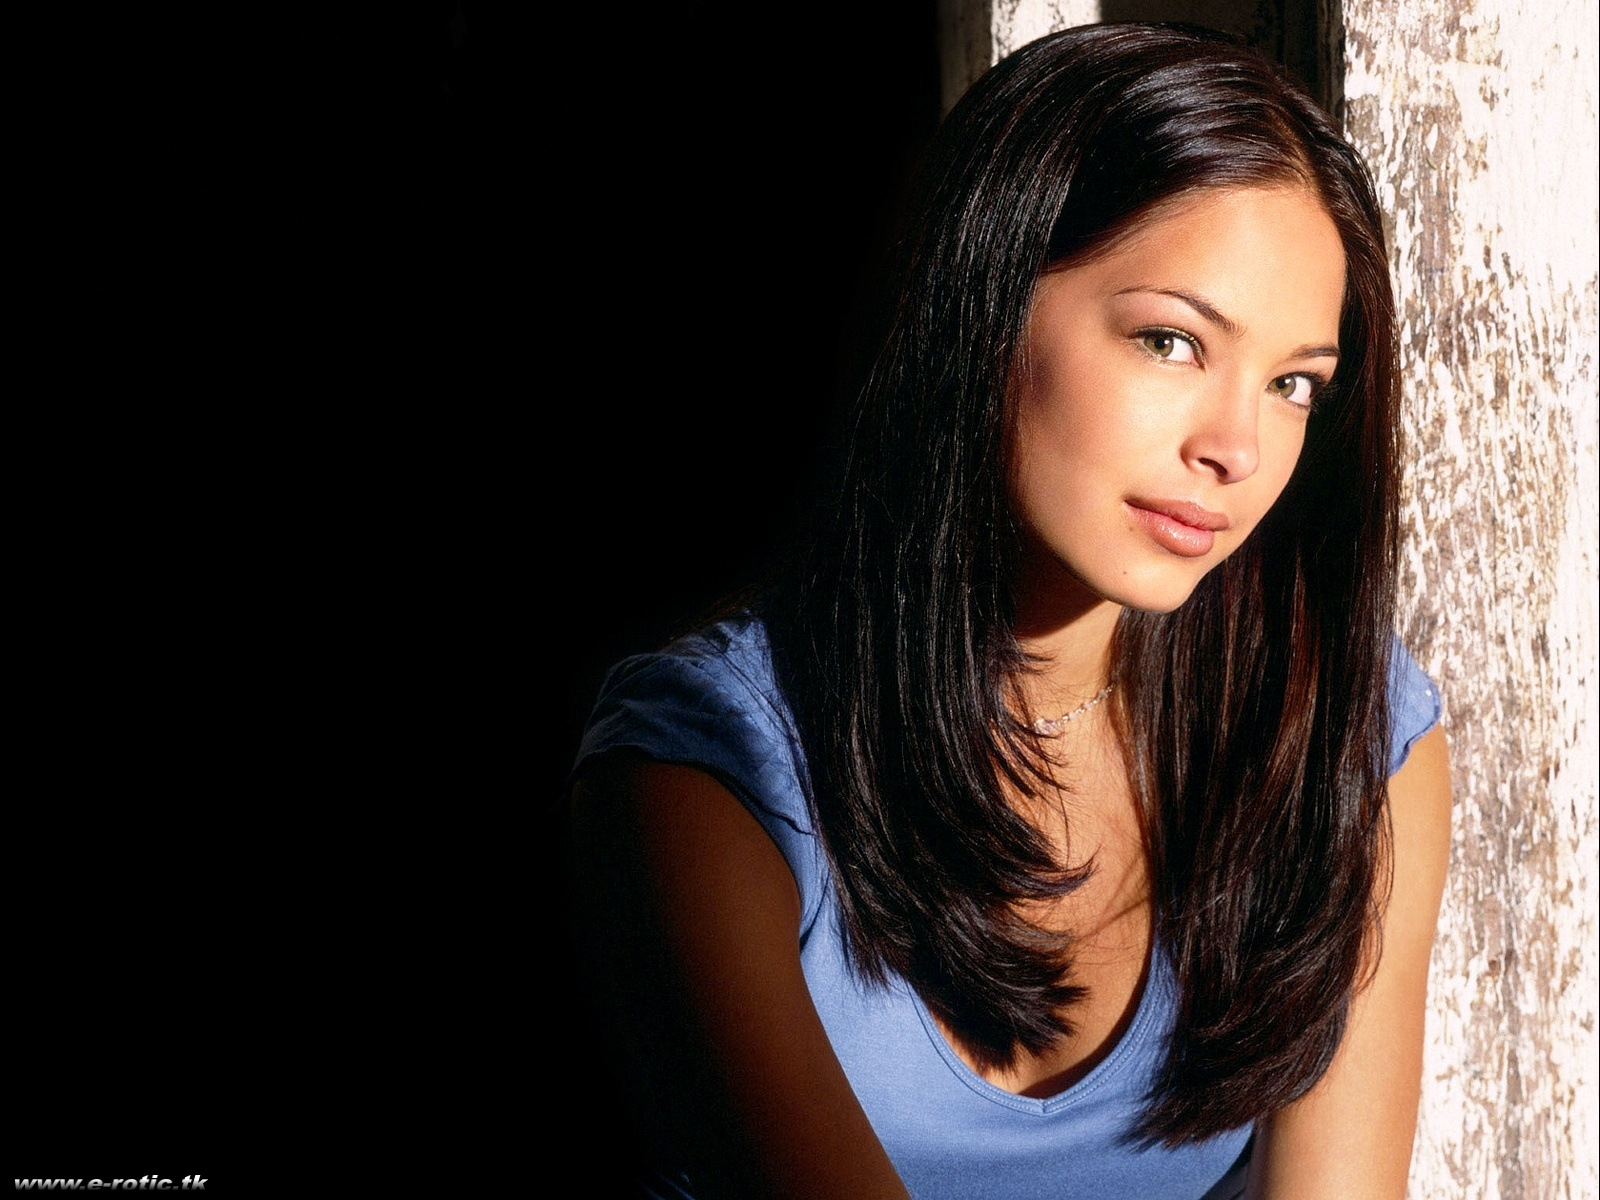 Wallpaper Kristin Kreuk Lana top sexy